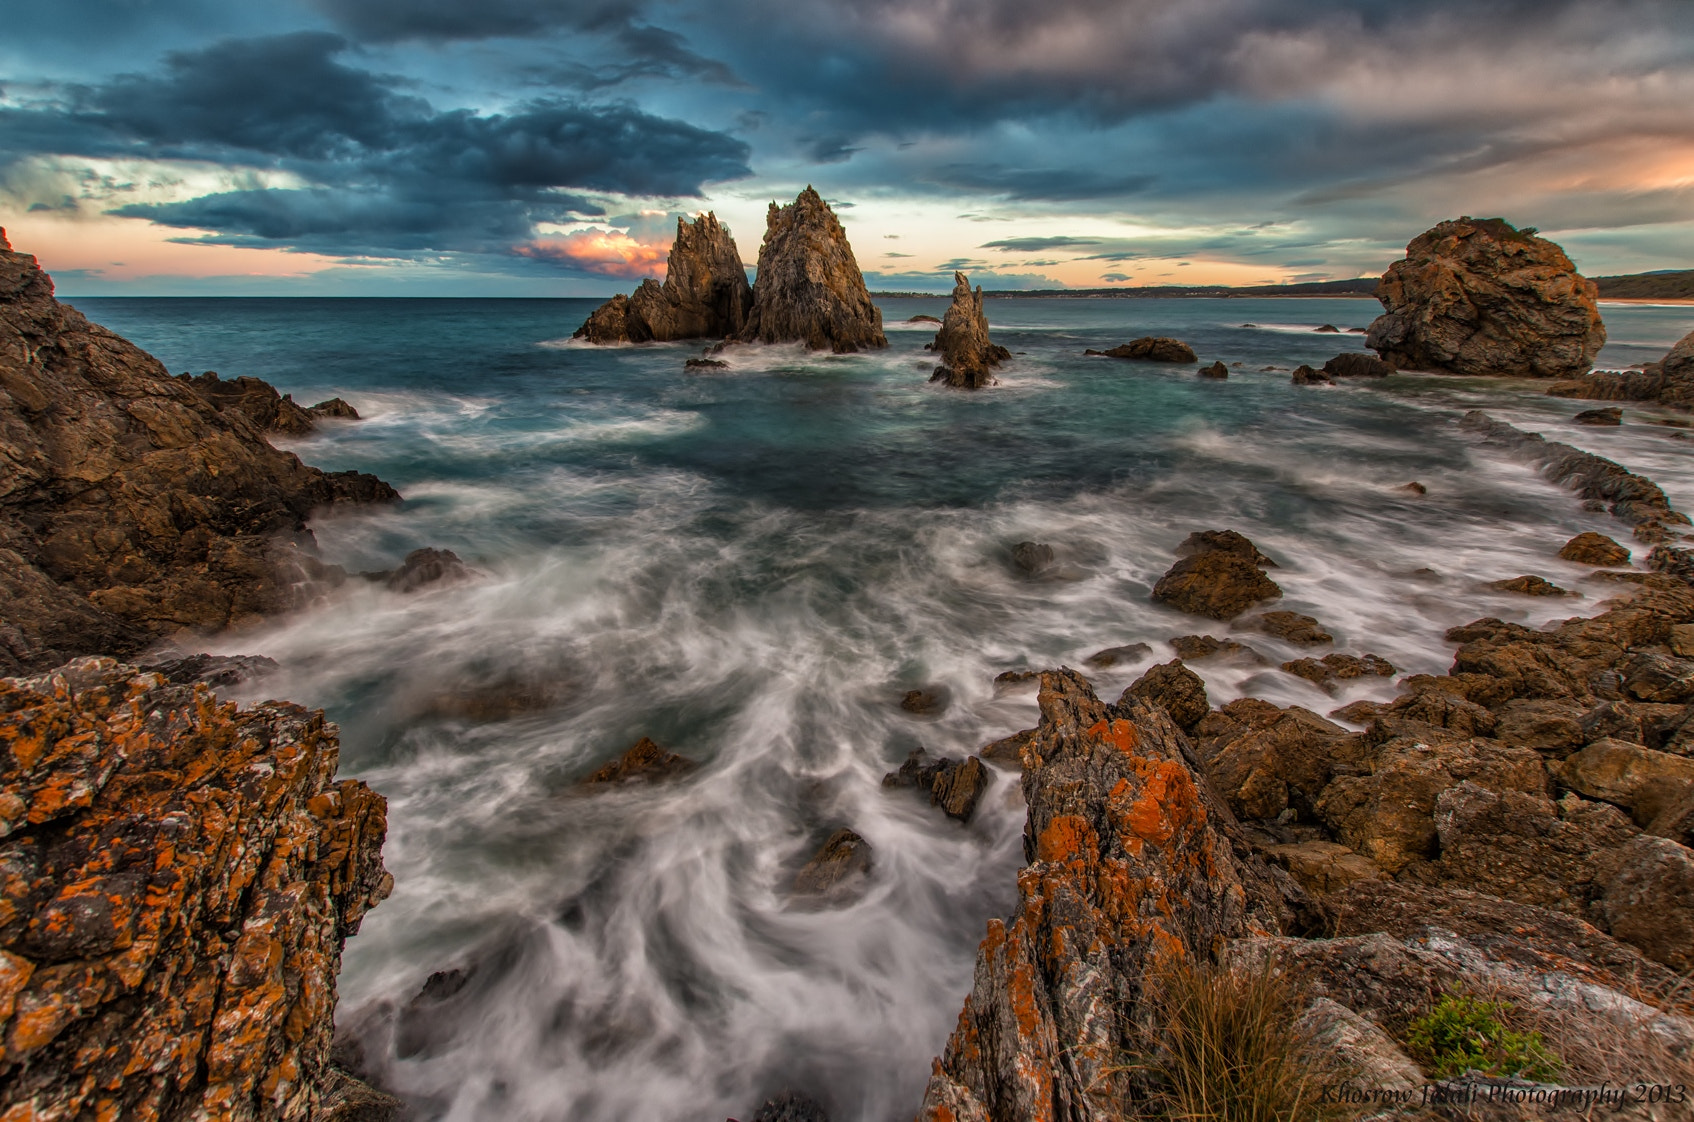 Photograph Camel Head Rock - Narooma -NSW by Khosrow Jalali on 500px